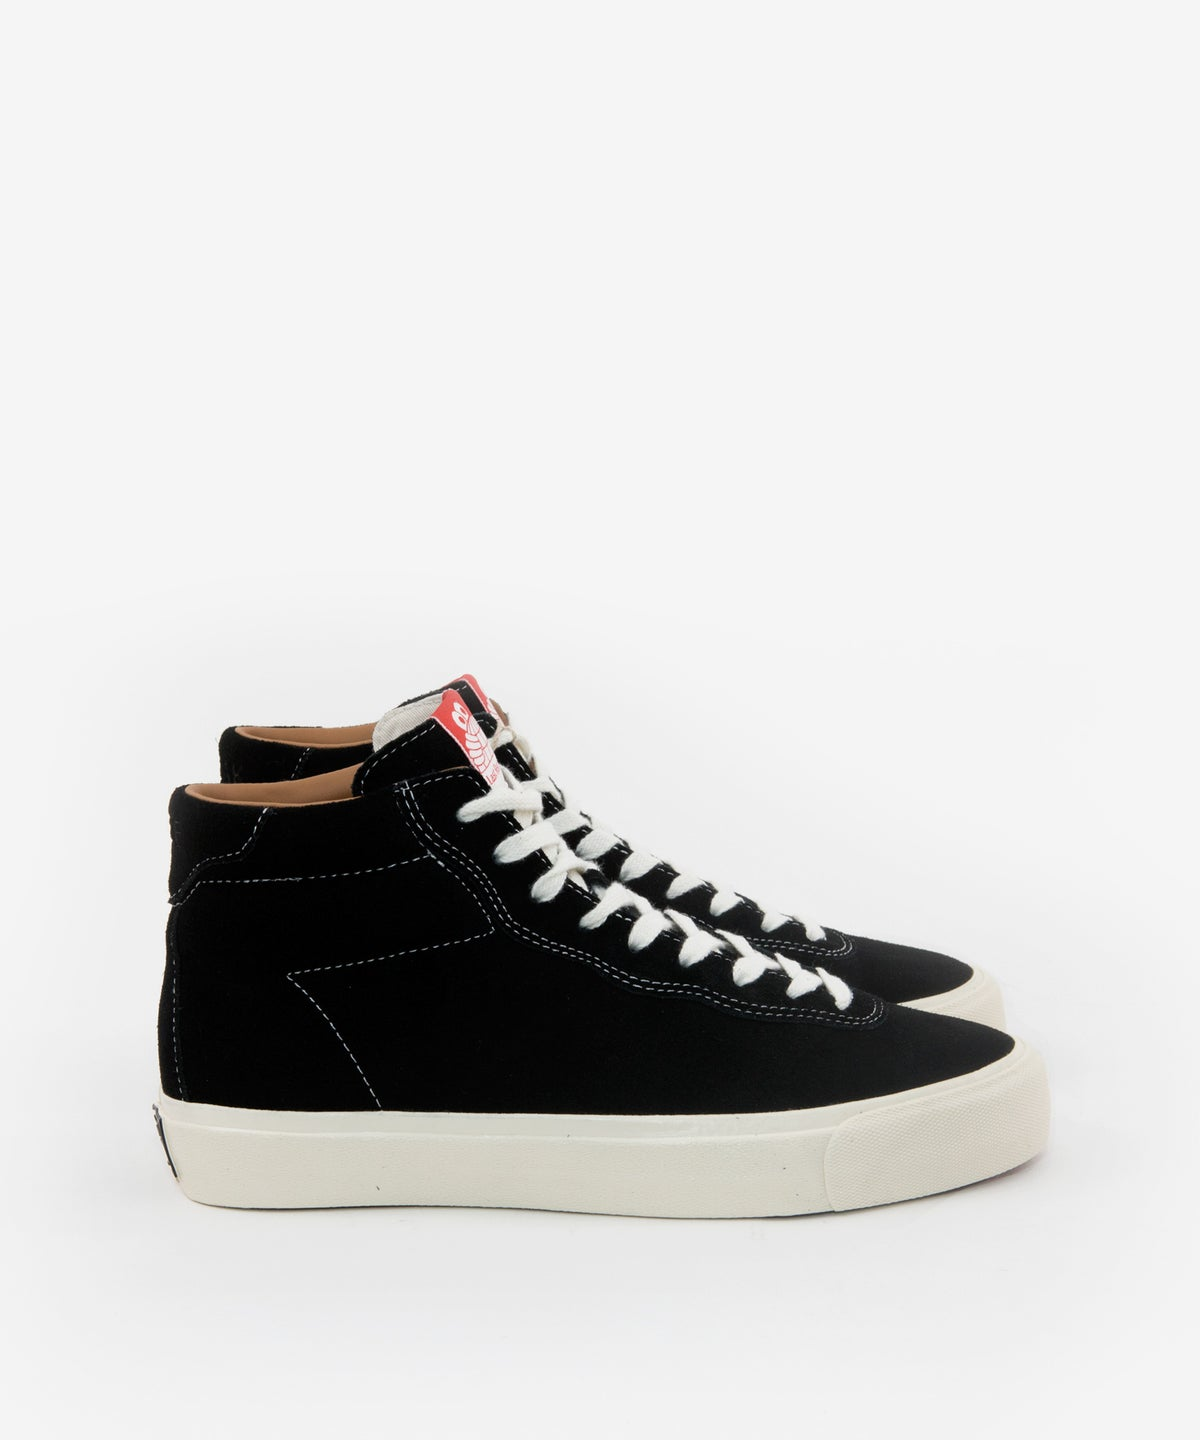 Image of LAST RESORT AB_VM001 SUEDE HI :::BLACK/WHITE:::